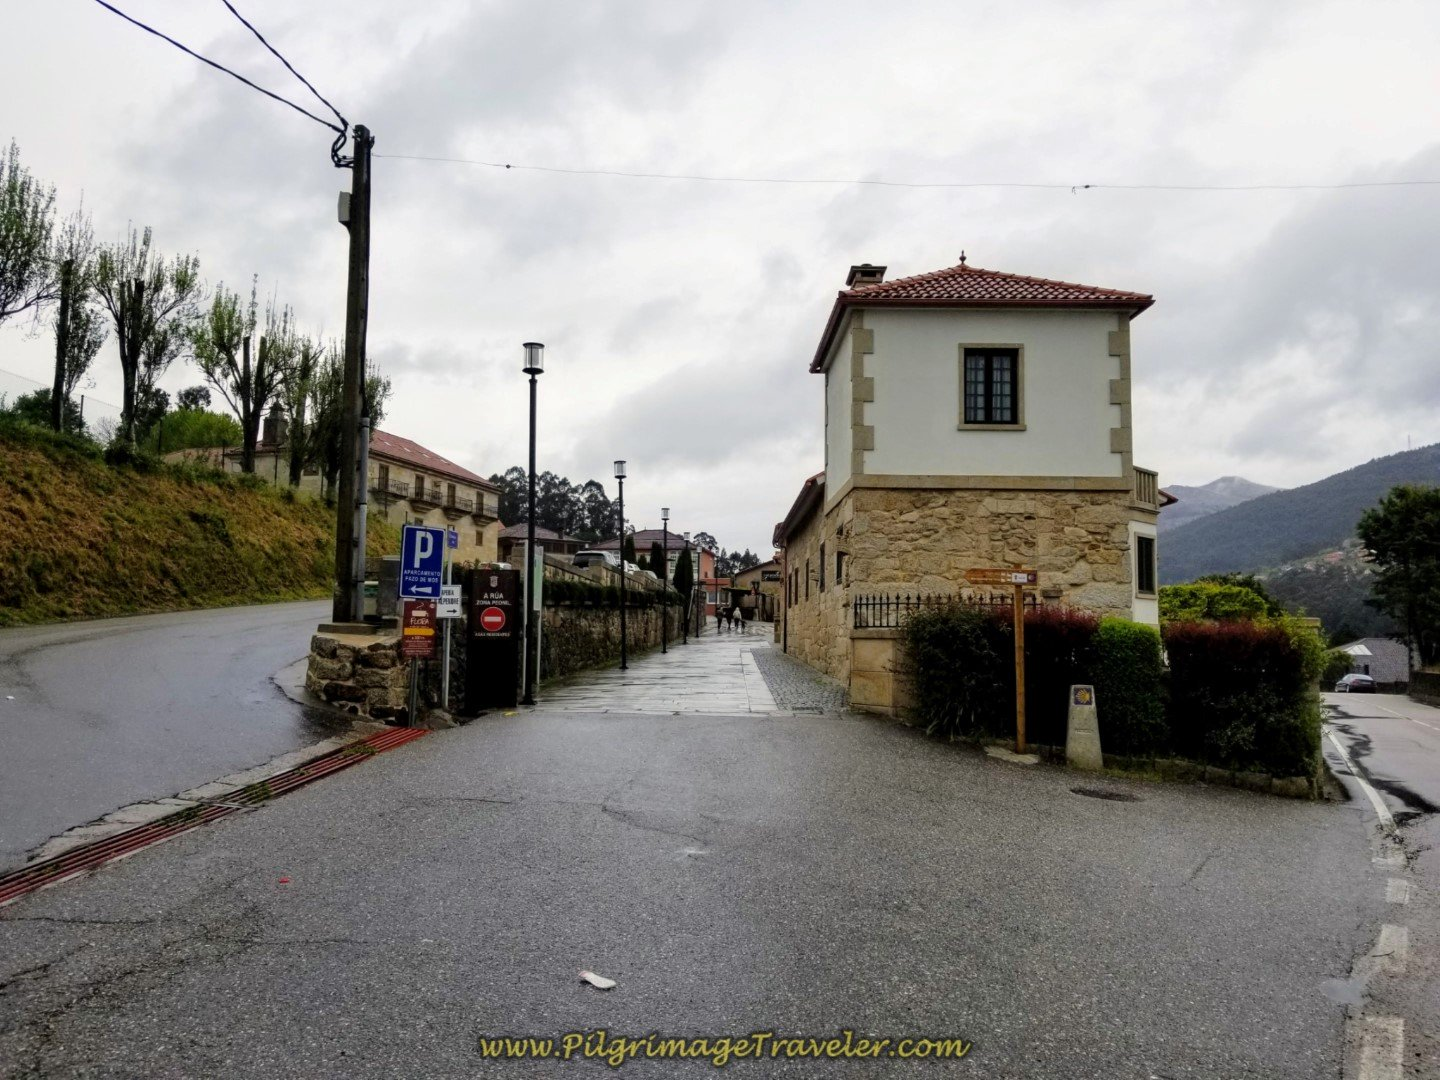 The Pedestrian Street, the Camiño da Rua, Into the Center of Mos on day twenty-one of the central route of the Portuguese Camino